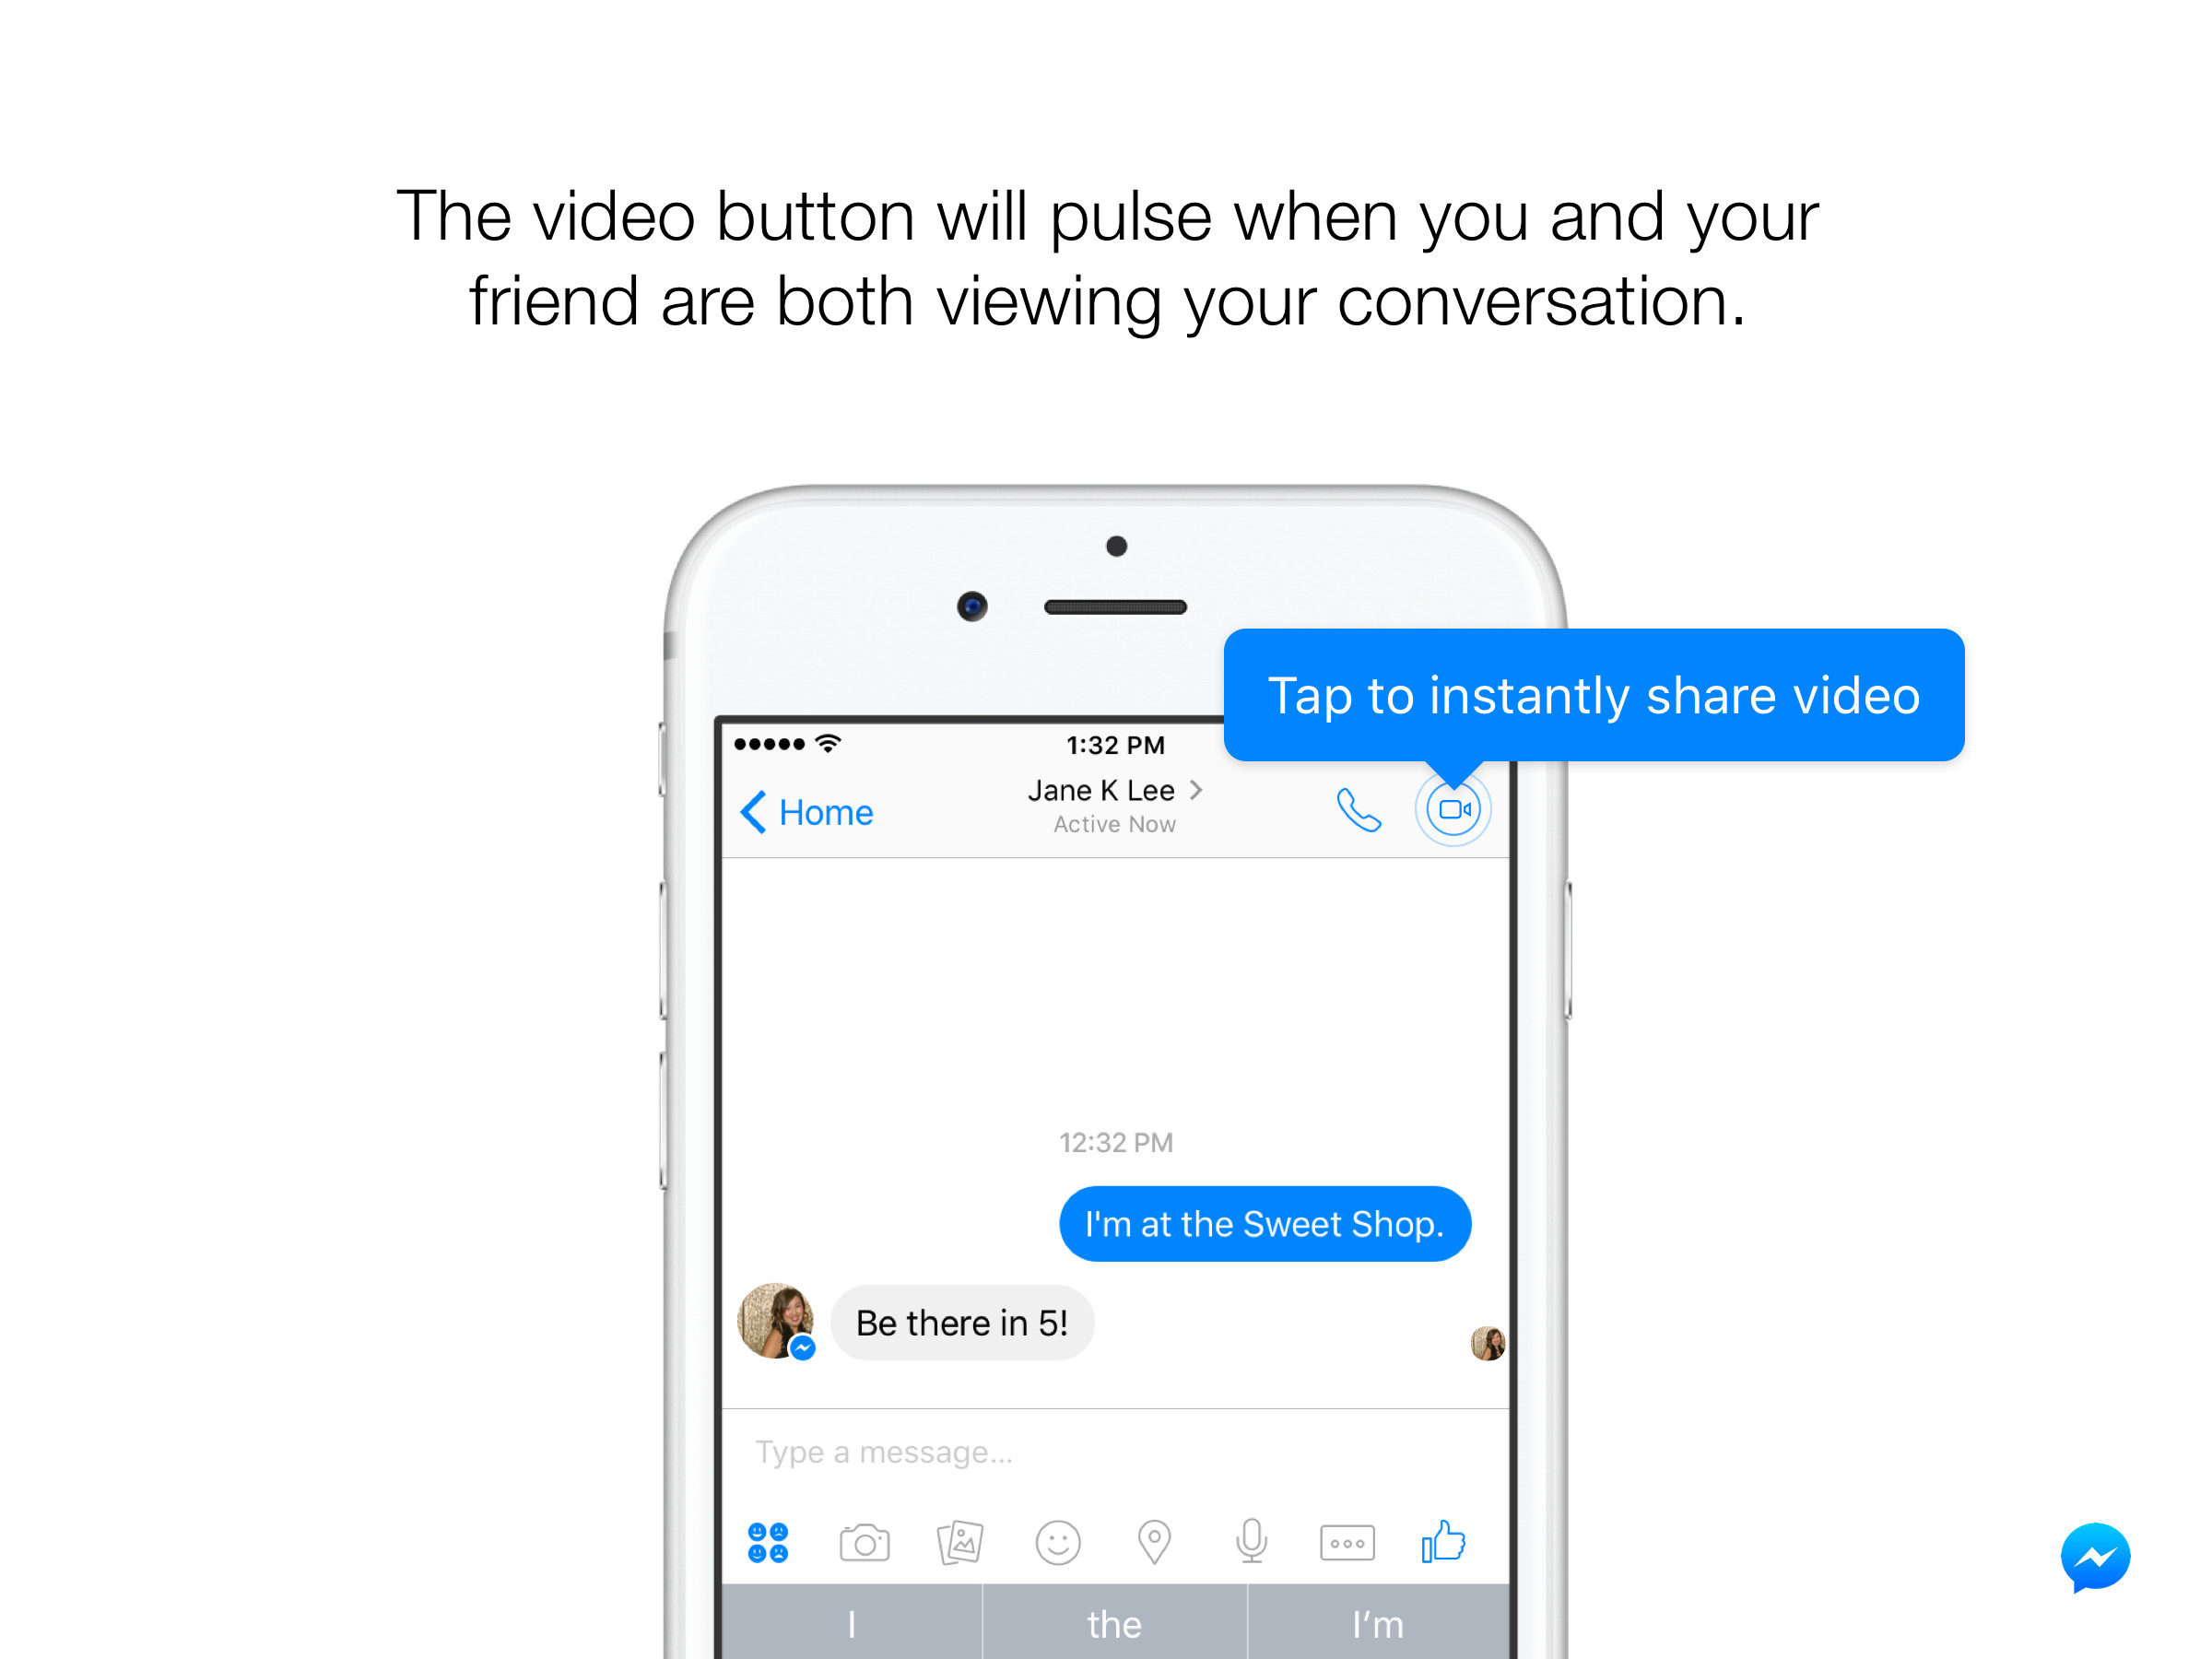 Facebook Introduces Live Streaming 'Instant Video' Feature in Messenger App